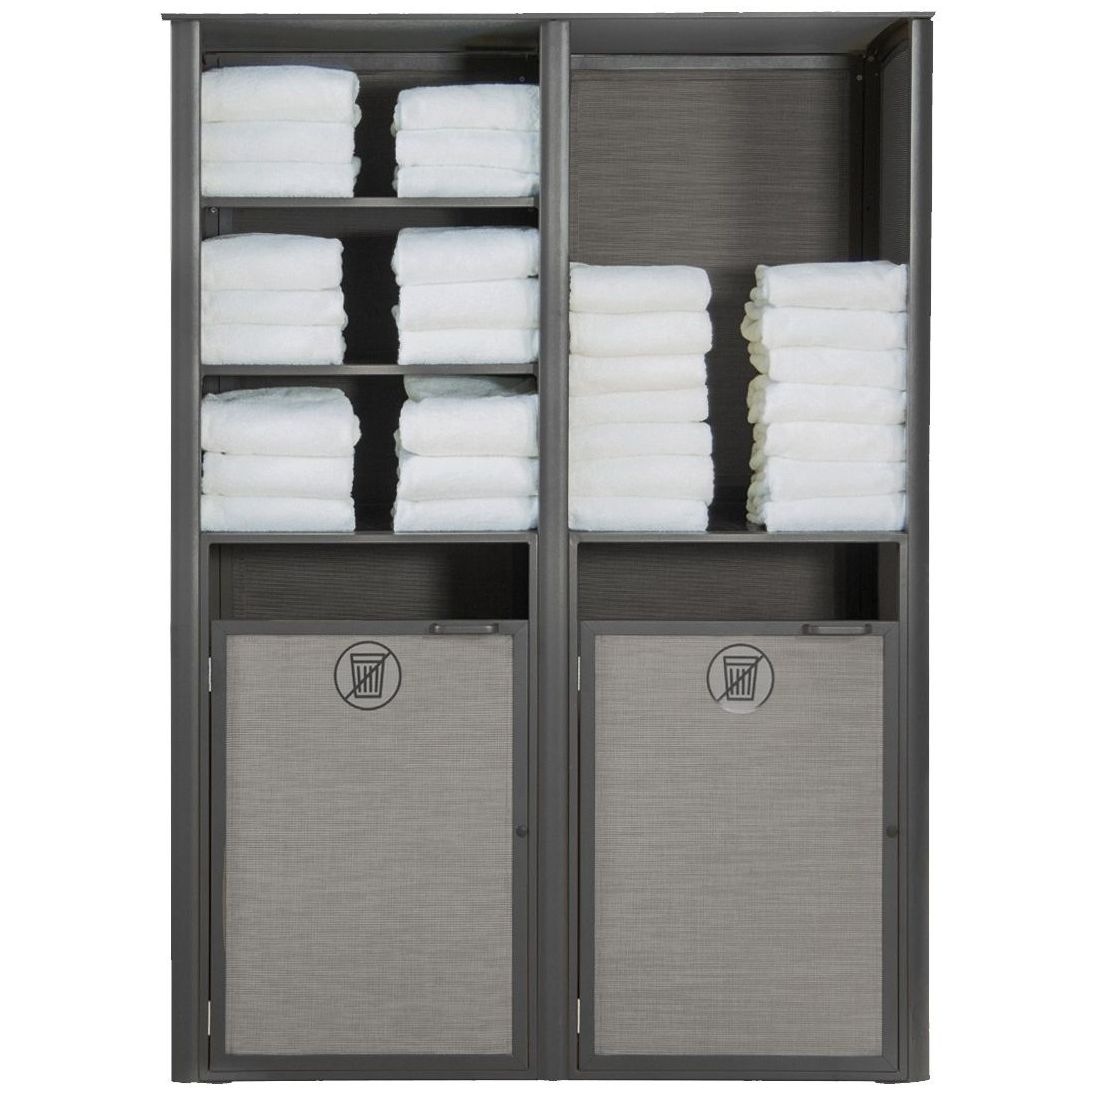 Grosfillex Sunset Towel Valet Double Unit in Solid Gray/Volcanic Black